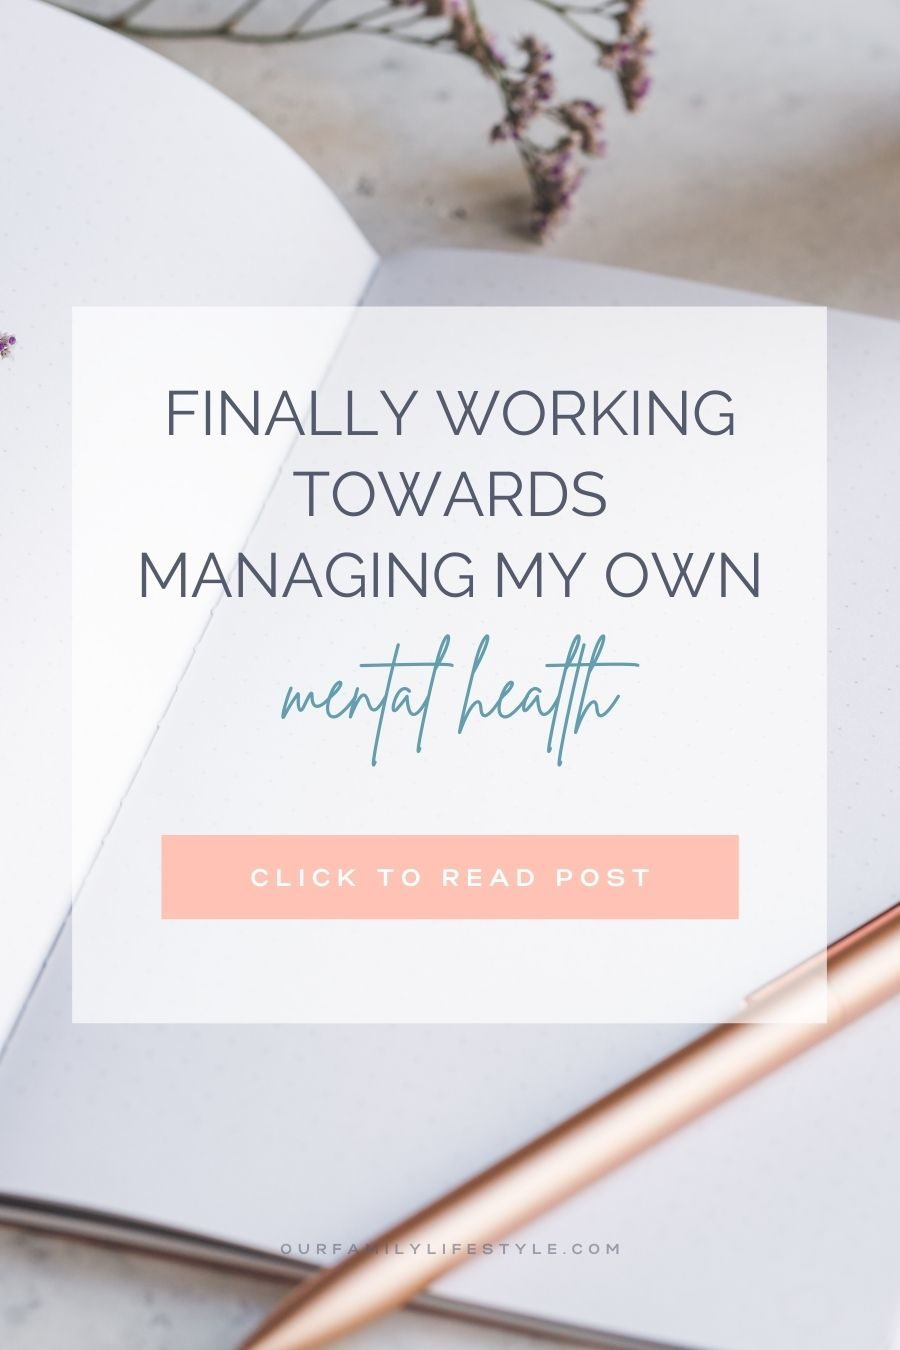 Finally Working Towards Managing My Own Mental Health